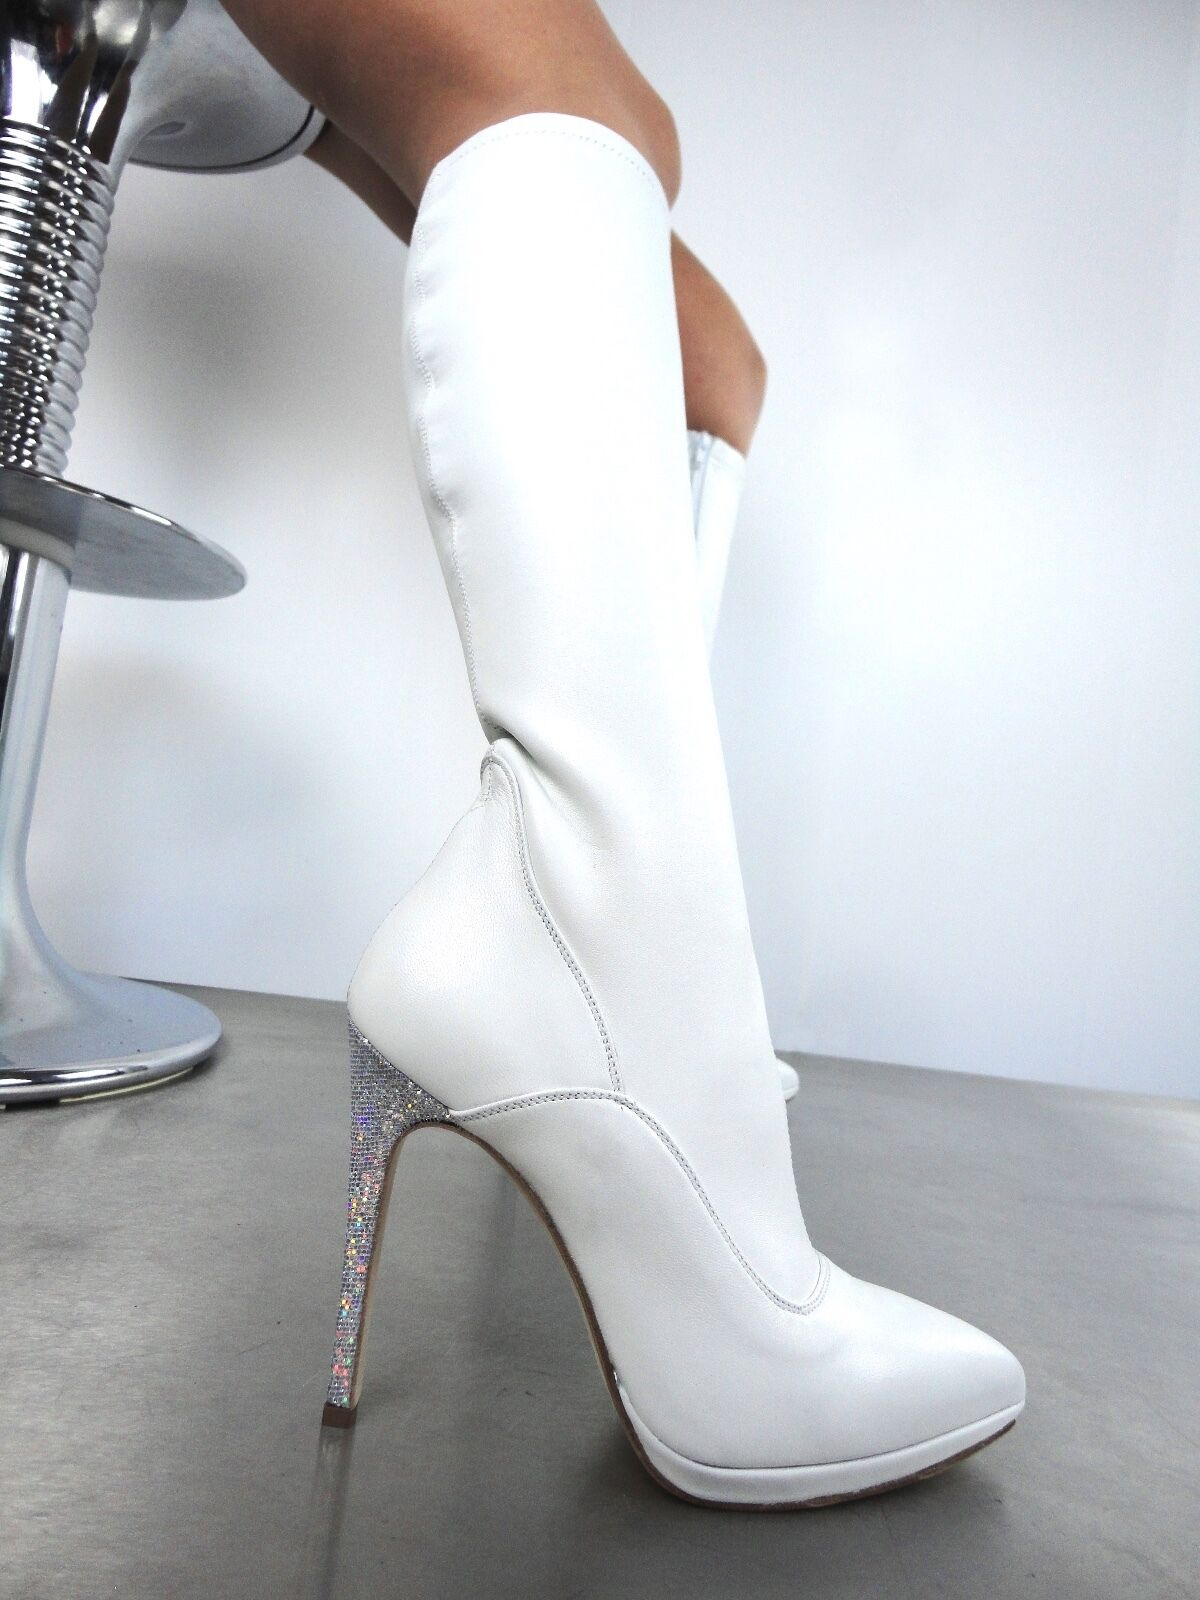 GIOHEL ITALY KNEE HIGH HEELS BOOTS STIEFEL STRETCH STIVALI REAL STRETCH STIEFEL PELLE BIANCO 43 f19f10